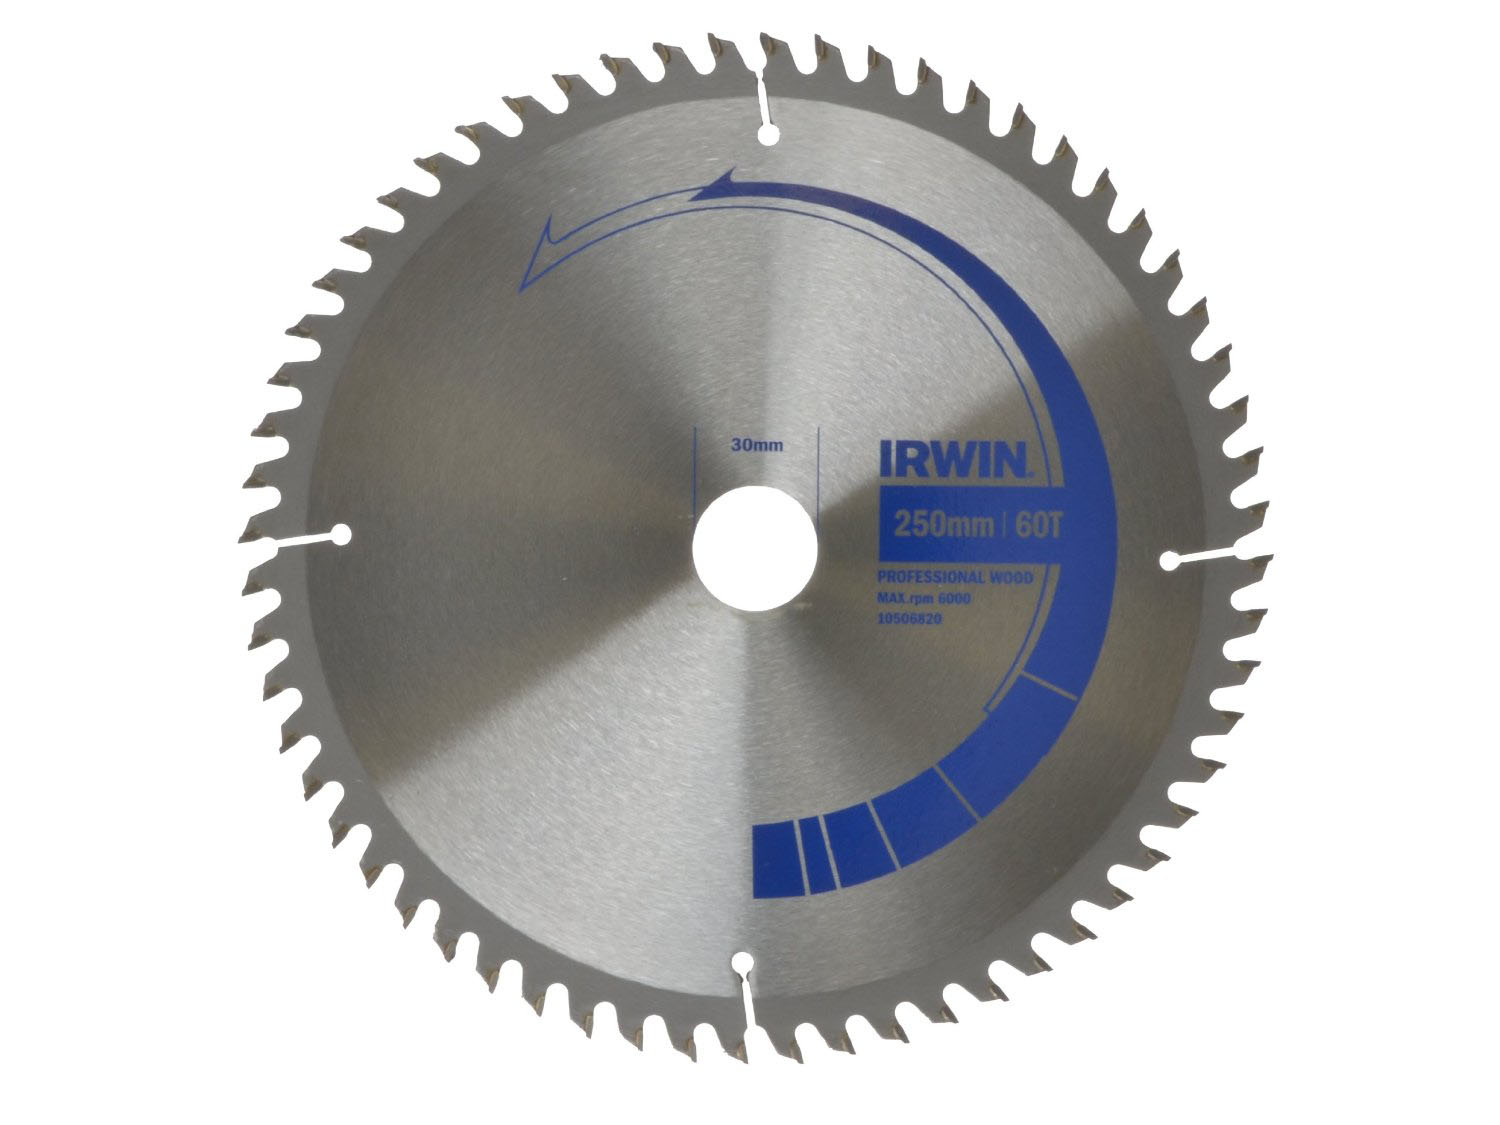 IRWIN 10506821 - Professional Wood Circular Saw Blade; 250x80Tx30mm